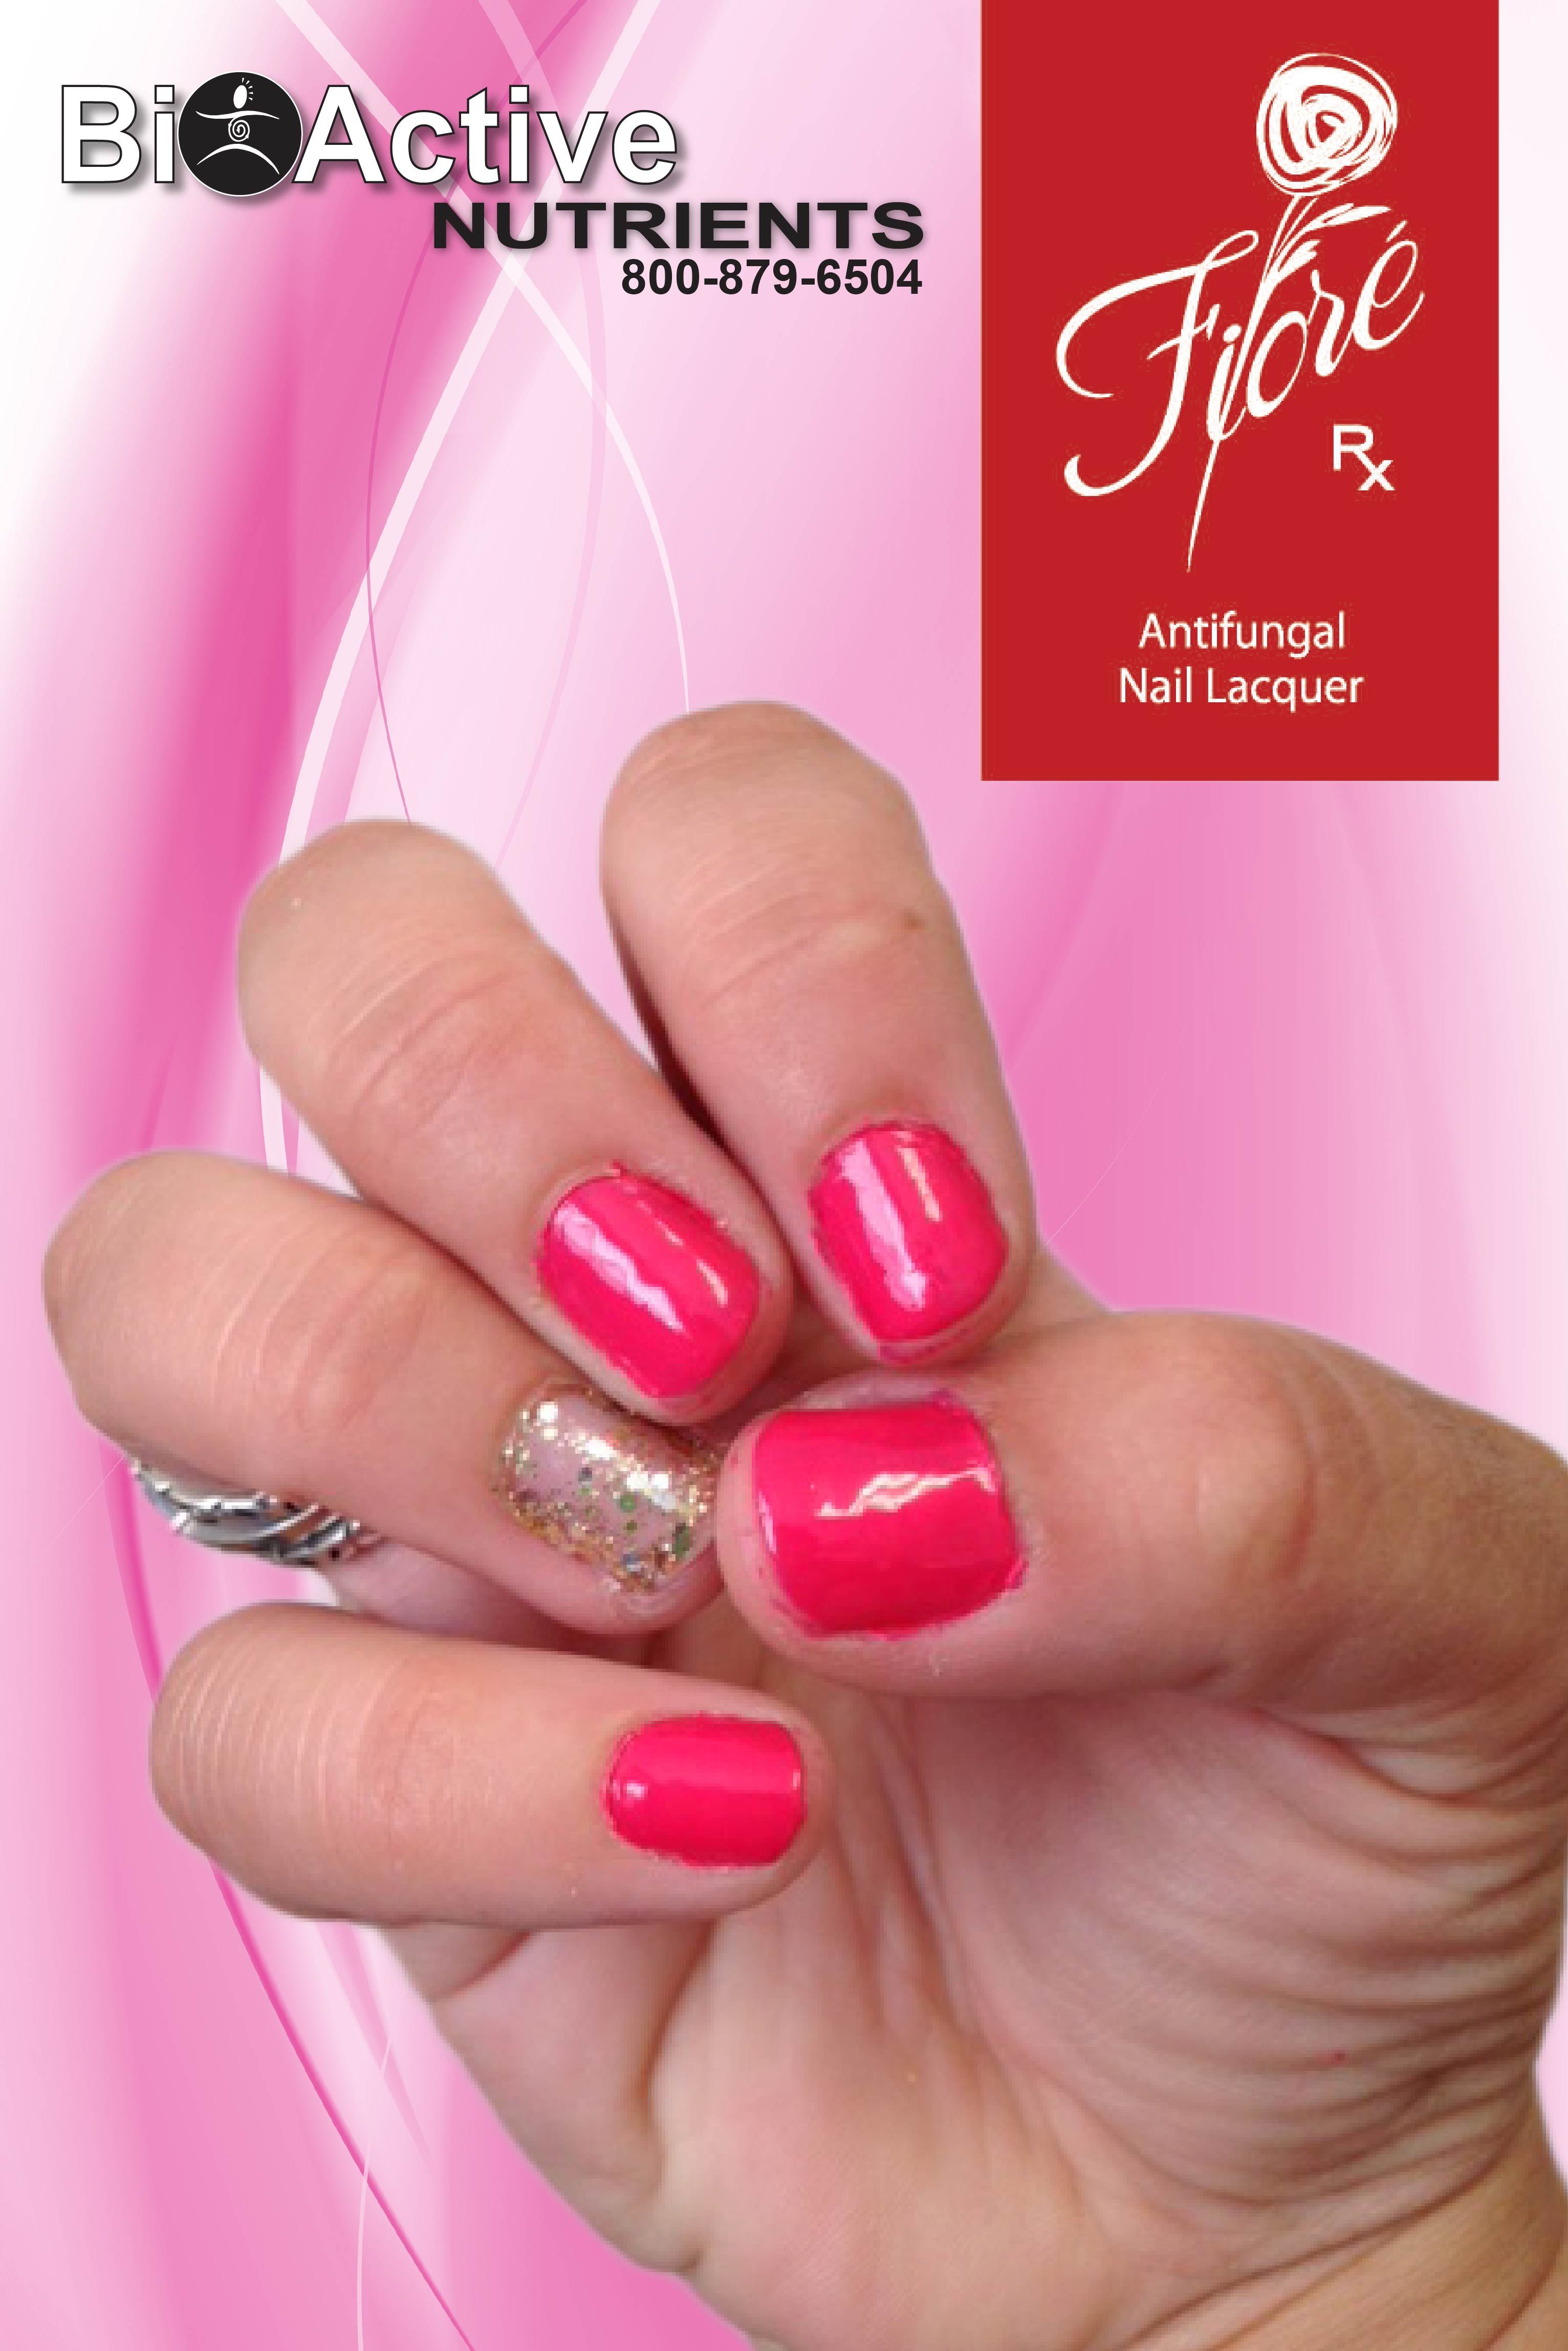 FioreRx antifungal nail lacquer in Coral Sorbet. 25% off at ...